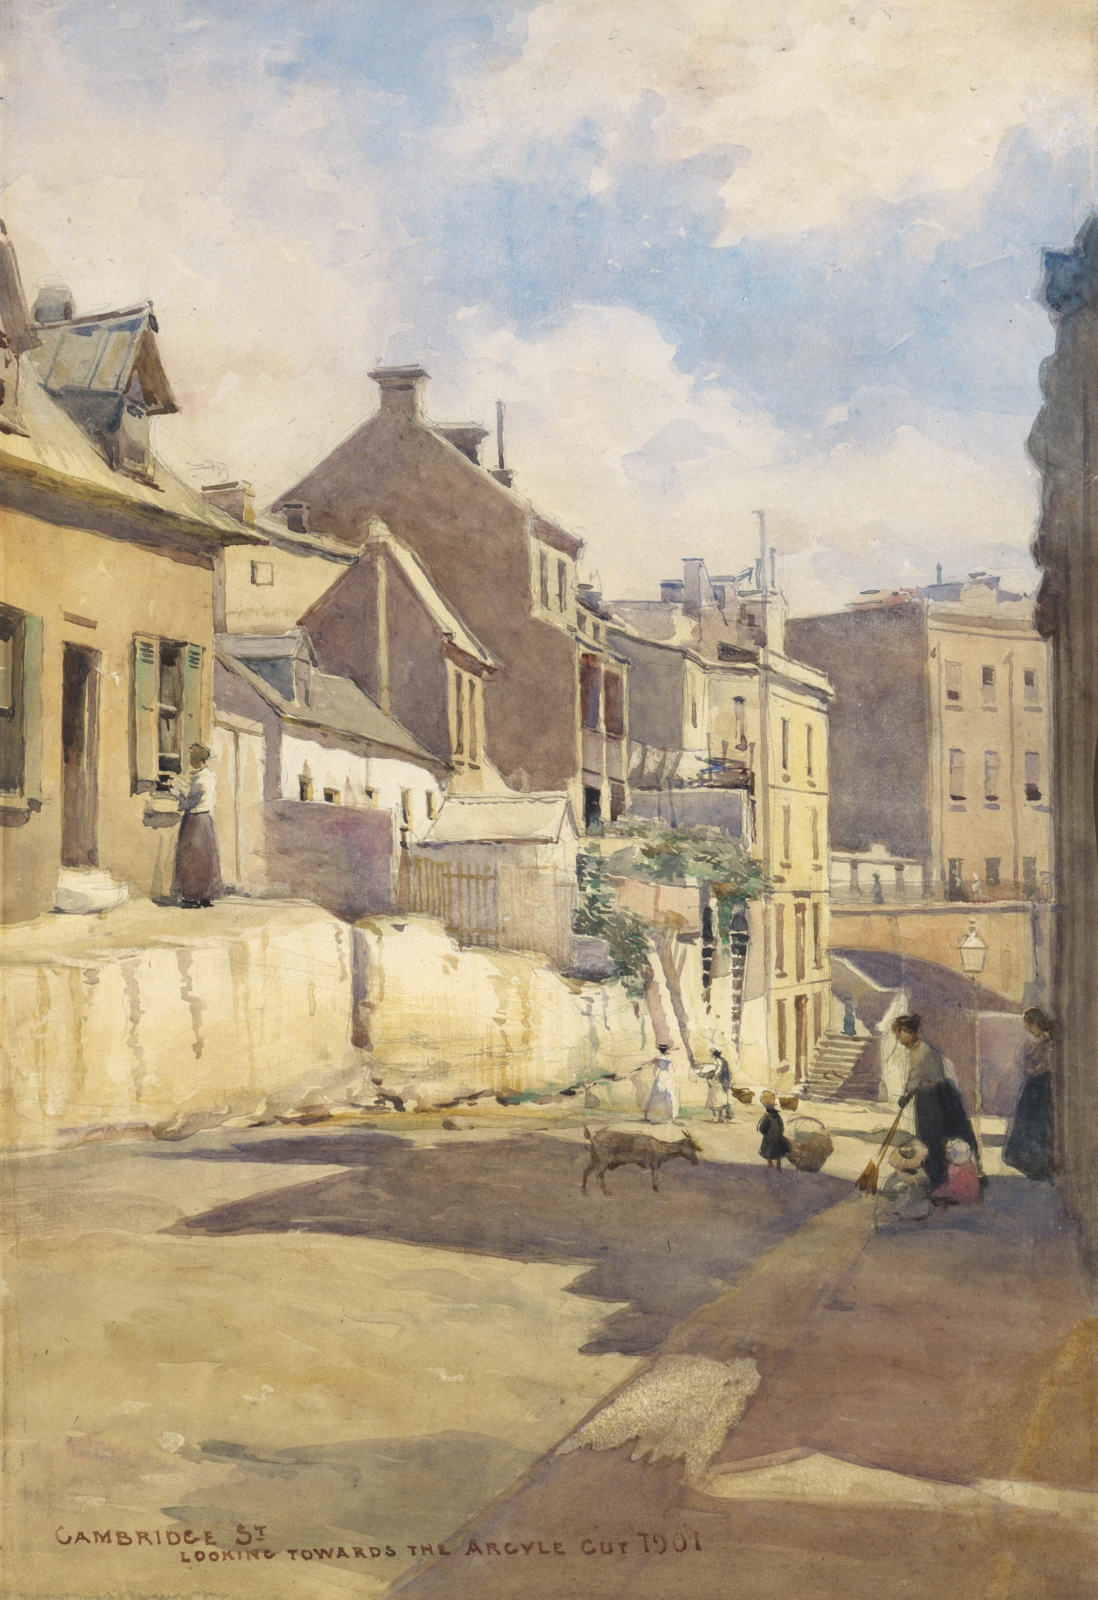 Painting of street scene. A lady, children and a goat gather in a street carved out of the sandstone with a mix of small houses above.